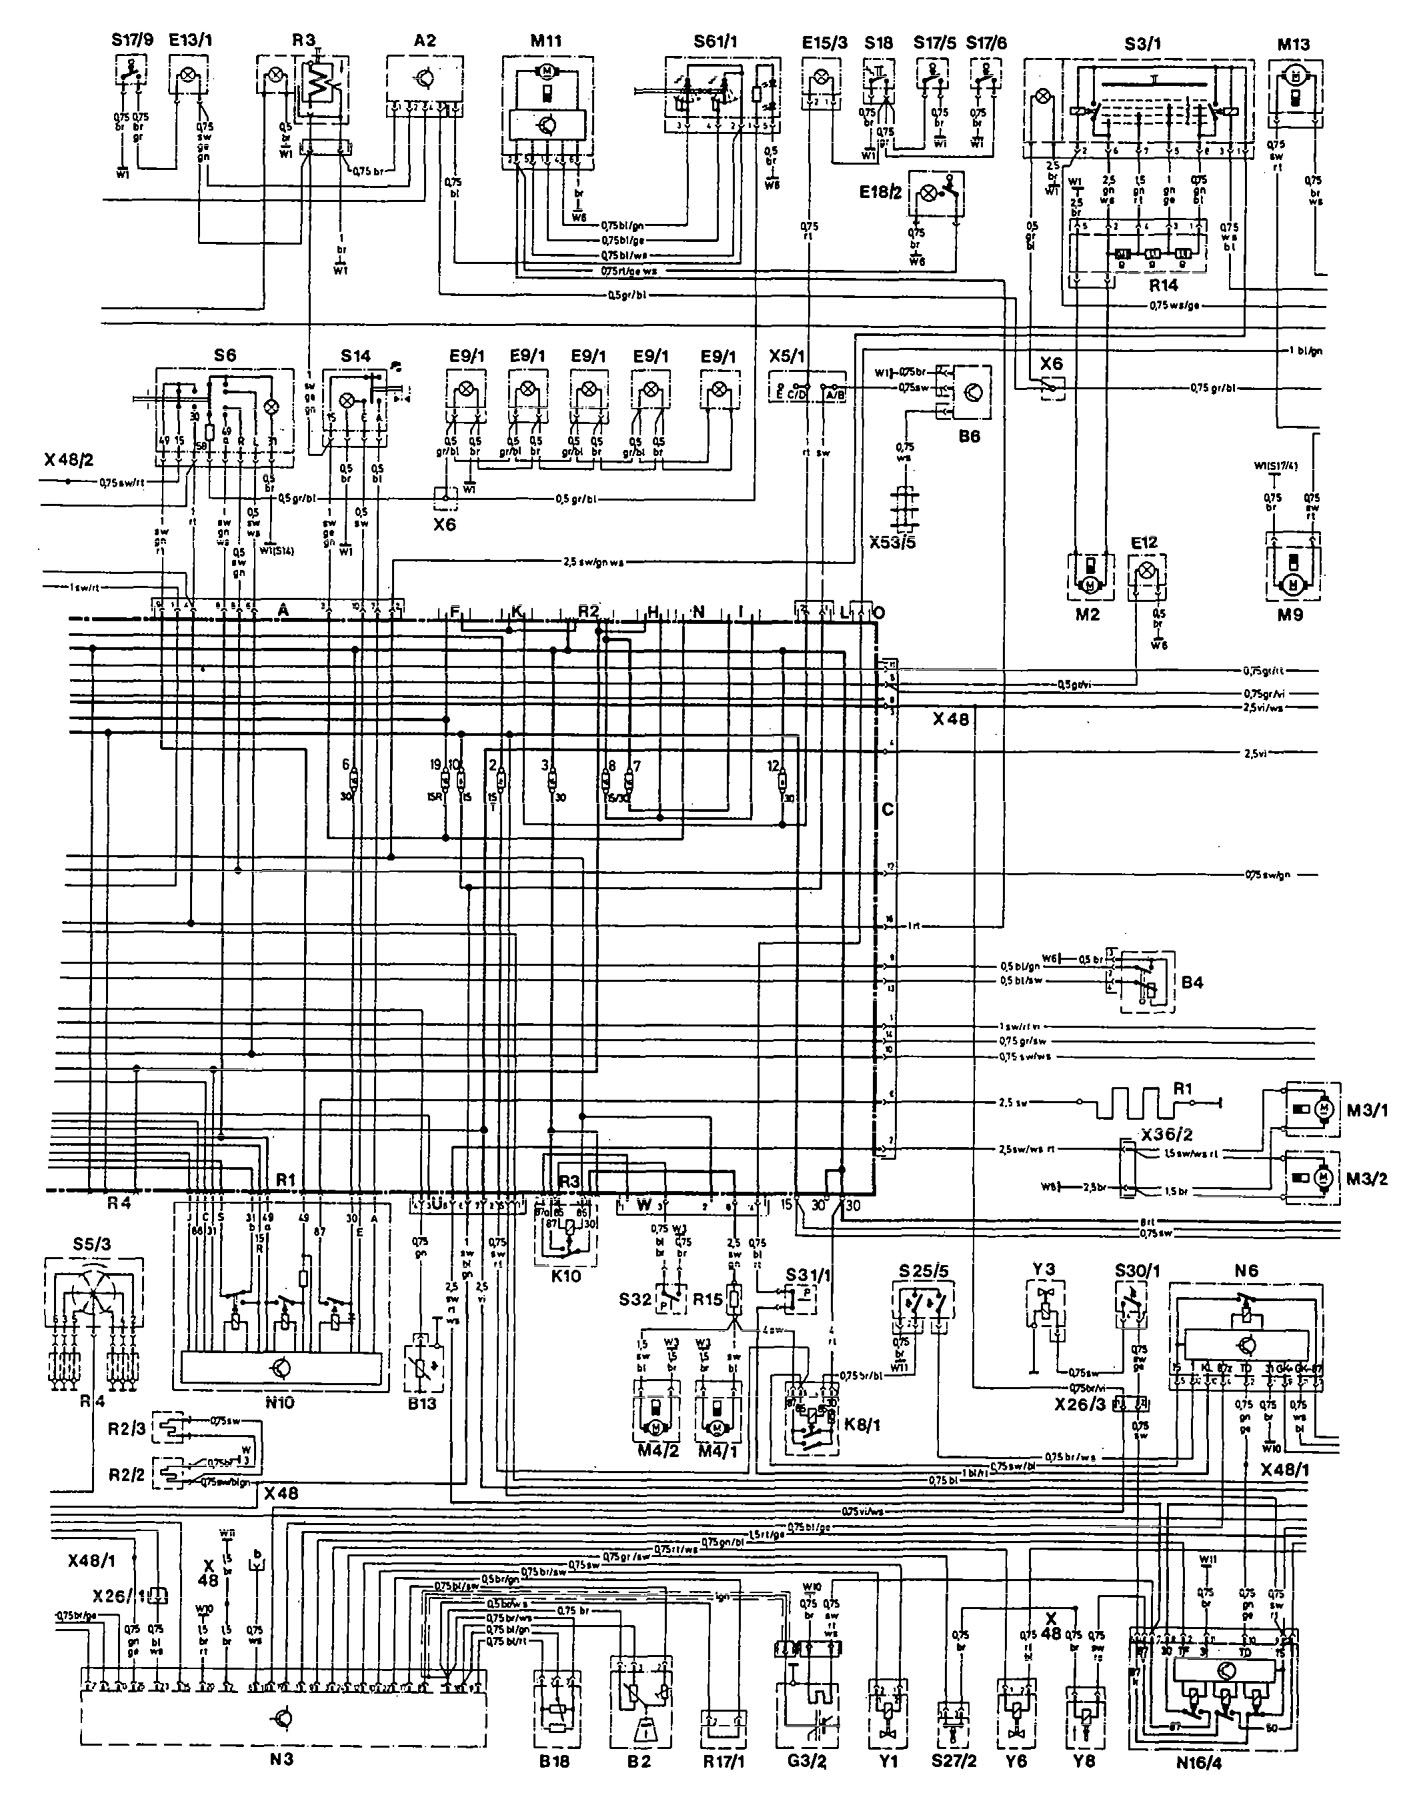 diagram] mercedes benz car radio wiring diagram full version hd quality wiring  diagram - diagrambraink.fitetsicilia.it  fitetsicilia.it